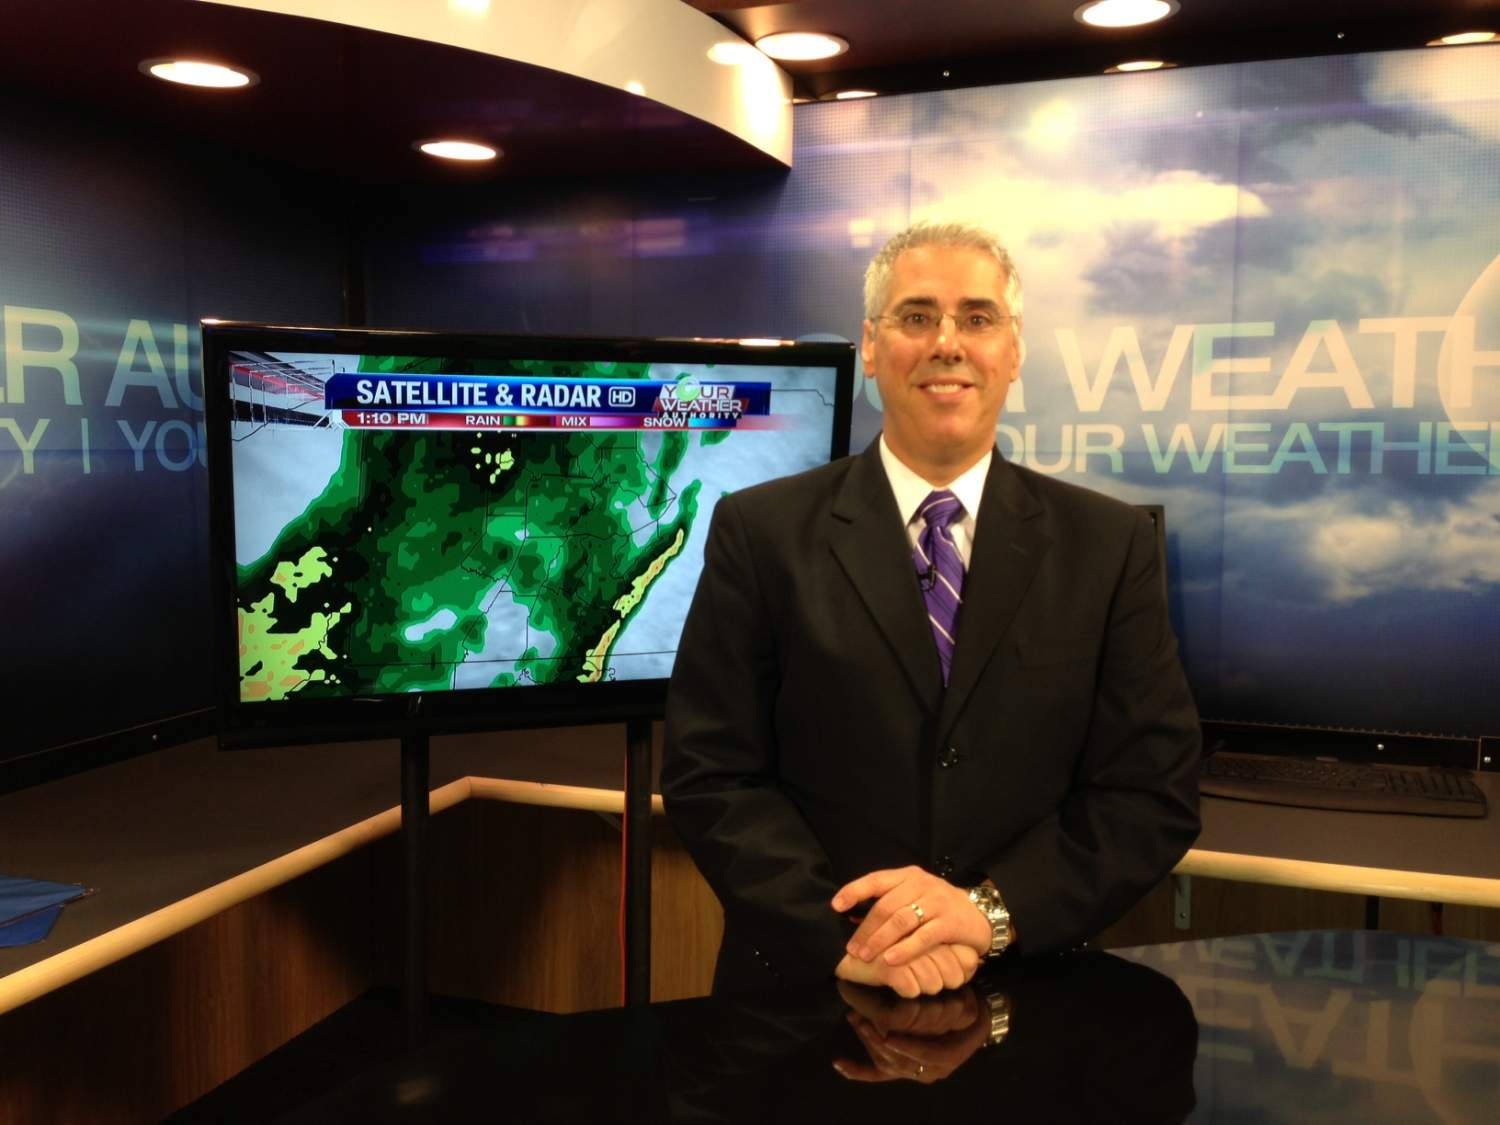 Chief Meteorologist Joe Murgo